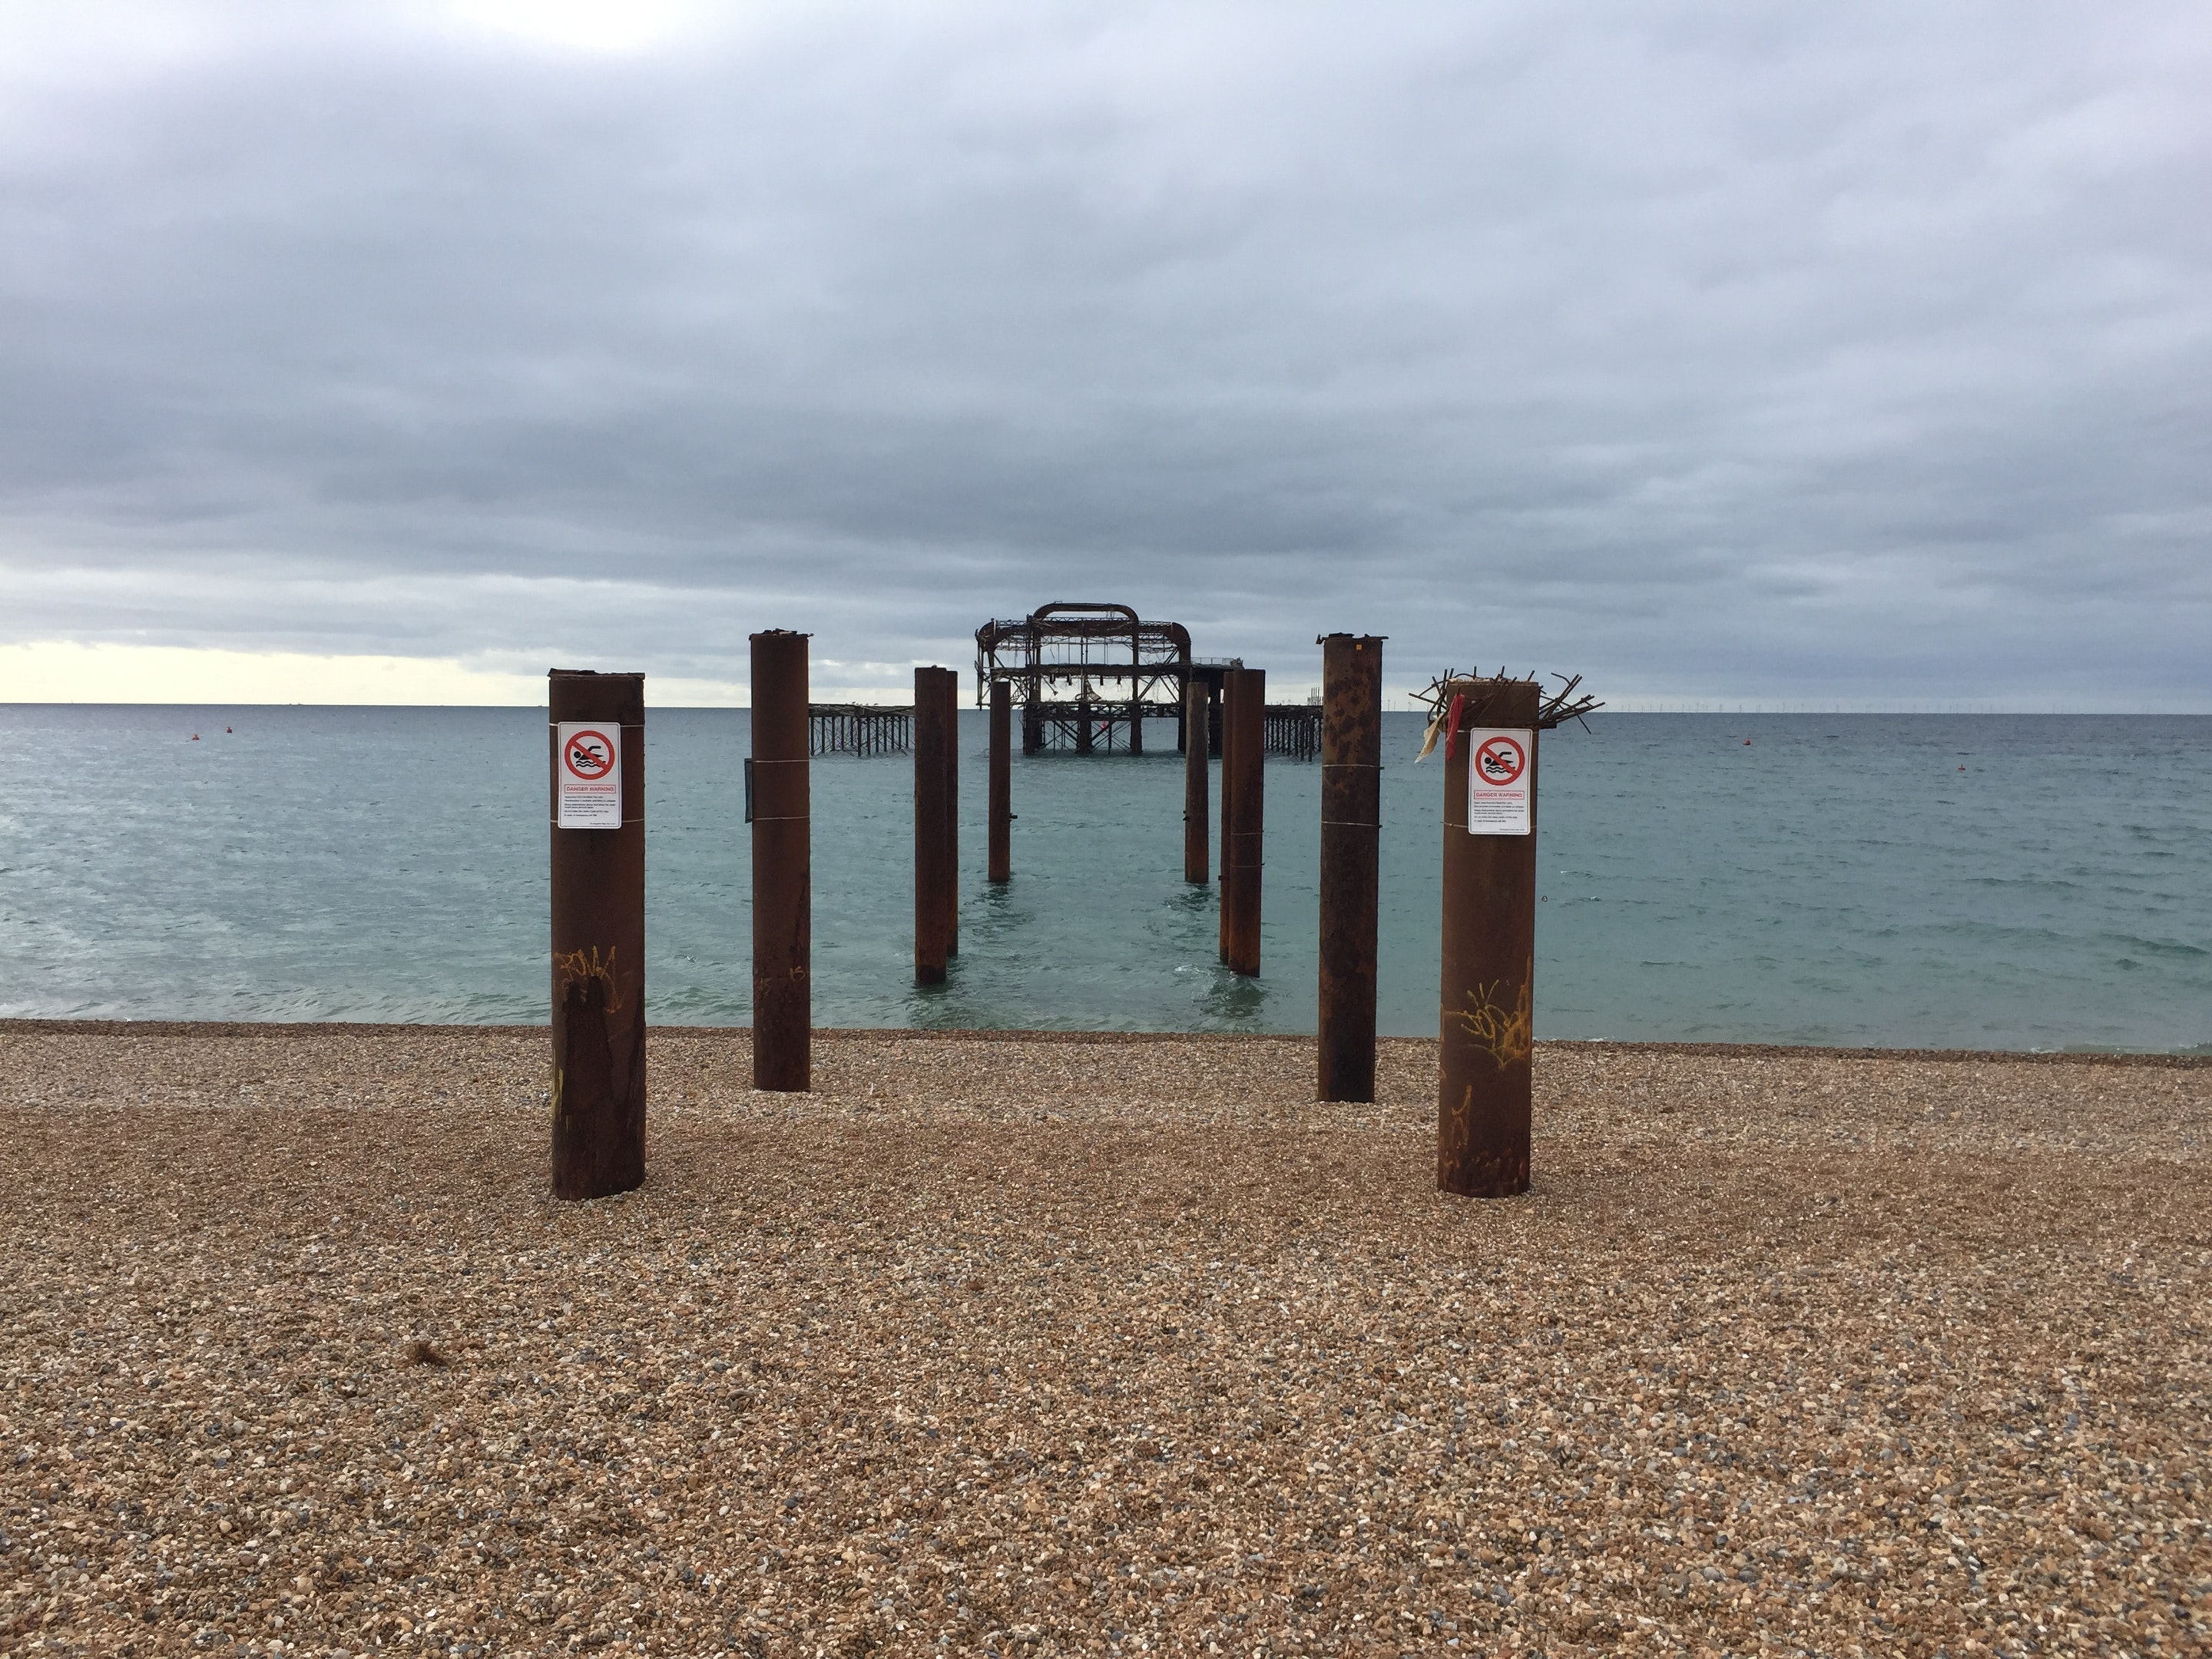 West pier - Picture taken by Laure